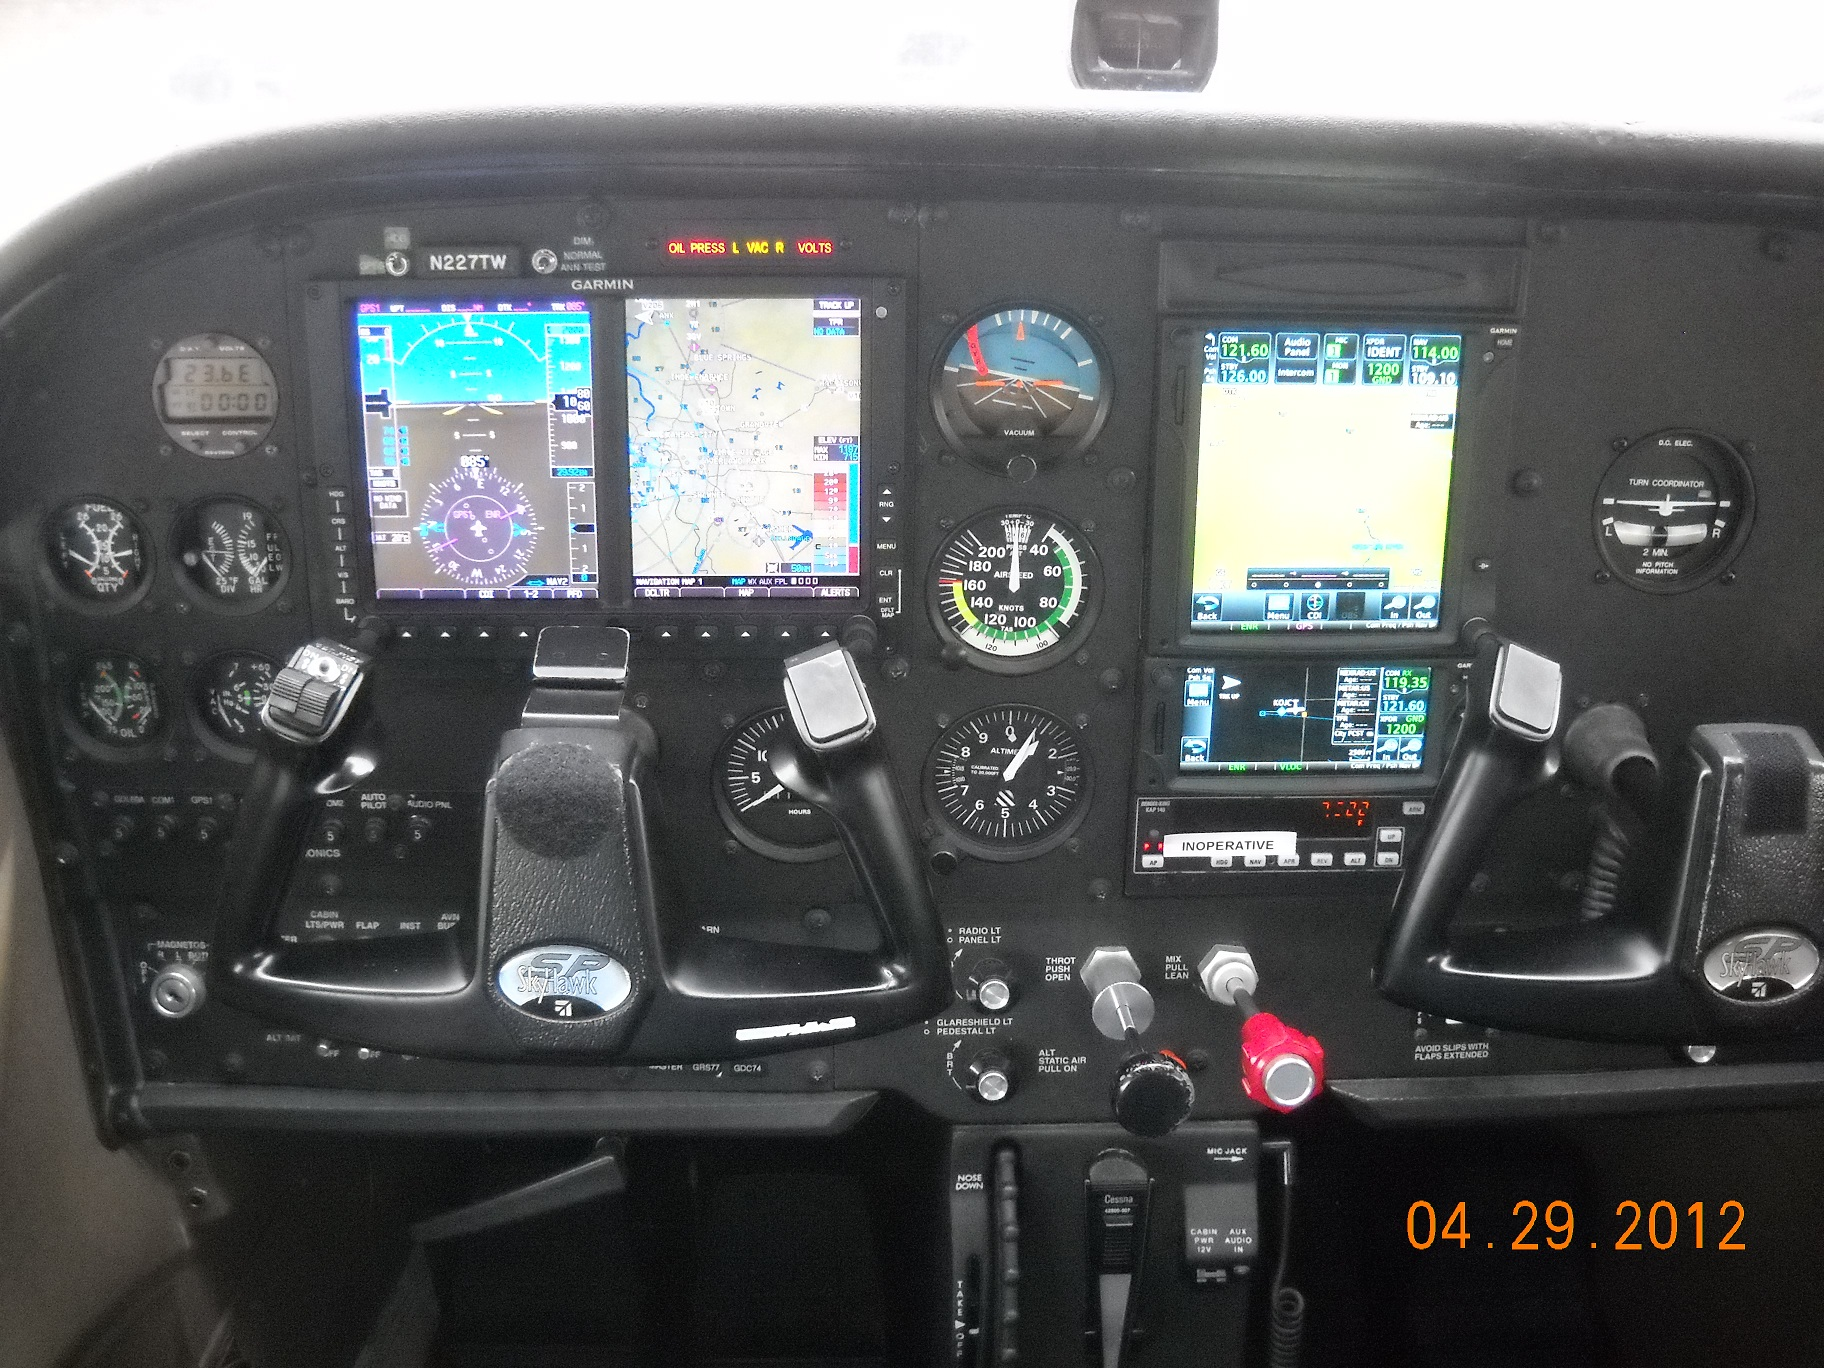 Is it possible to buy an older Cessna 172 and upgrade the cockpit to